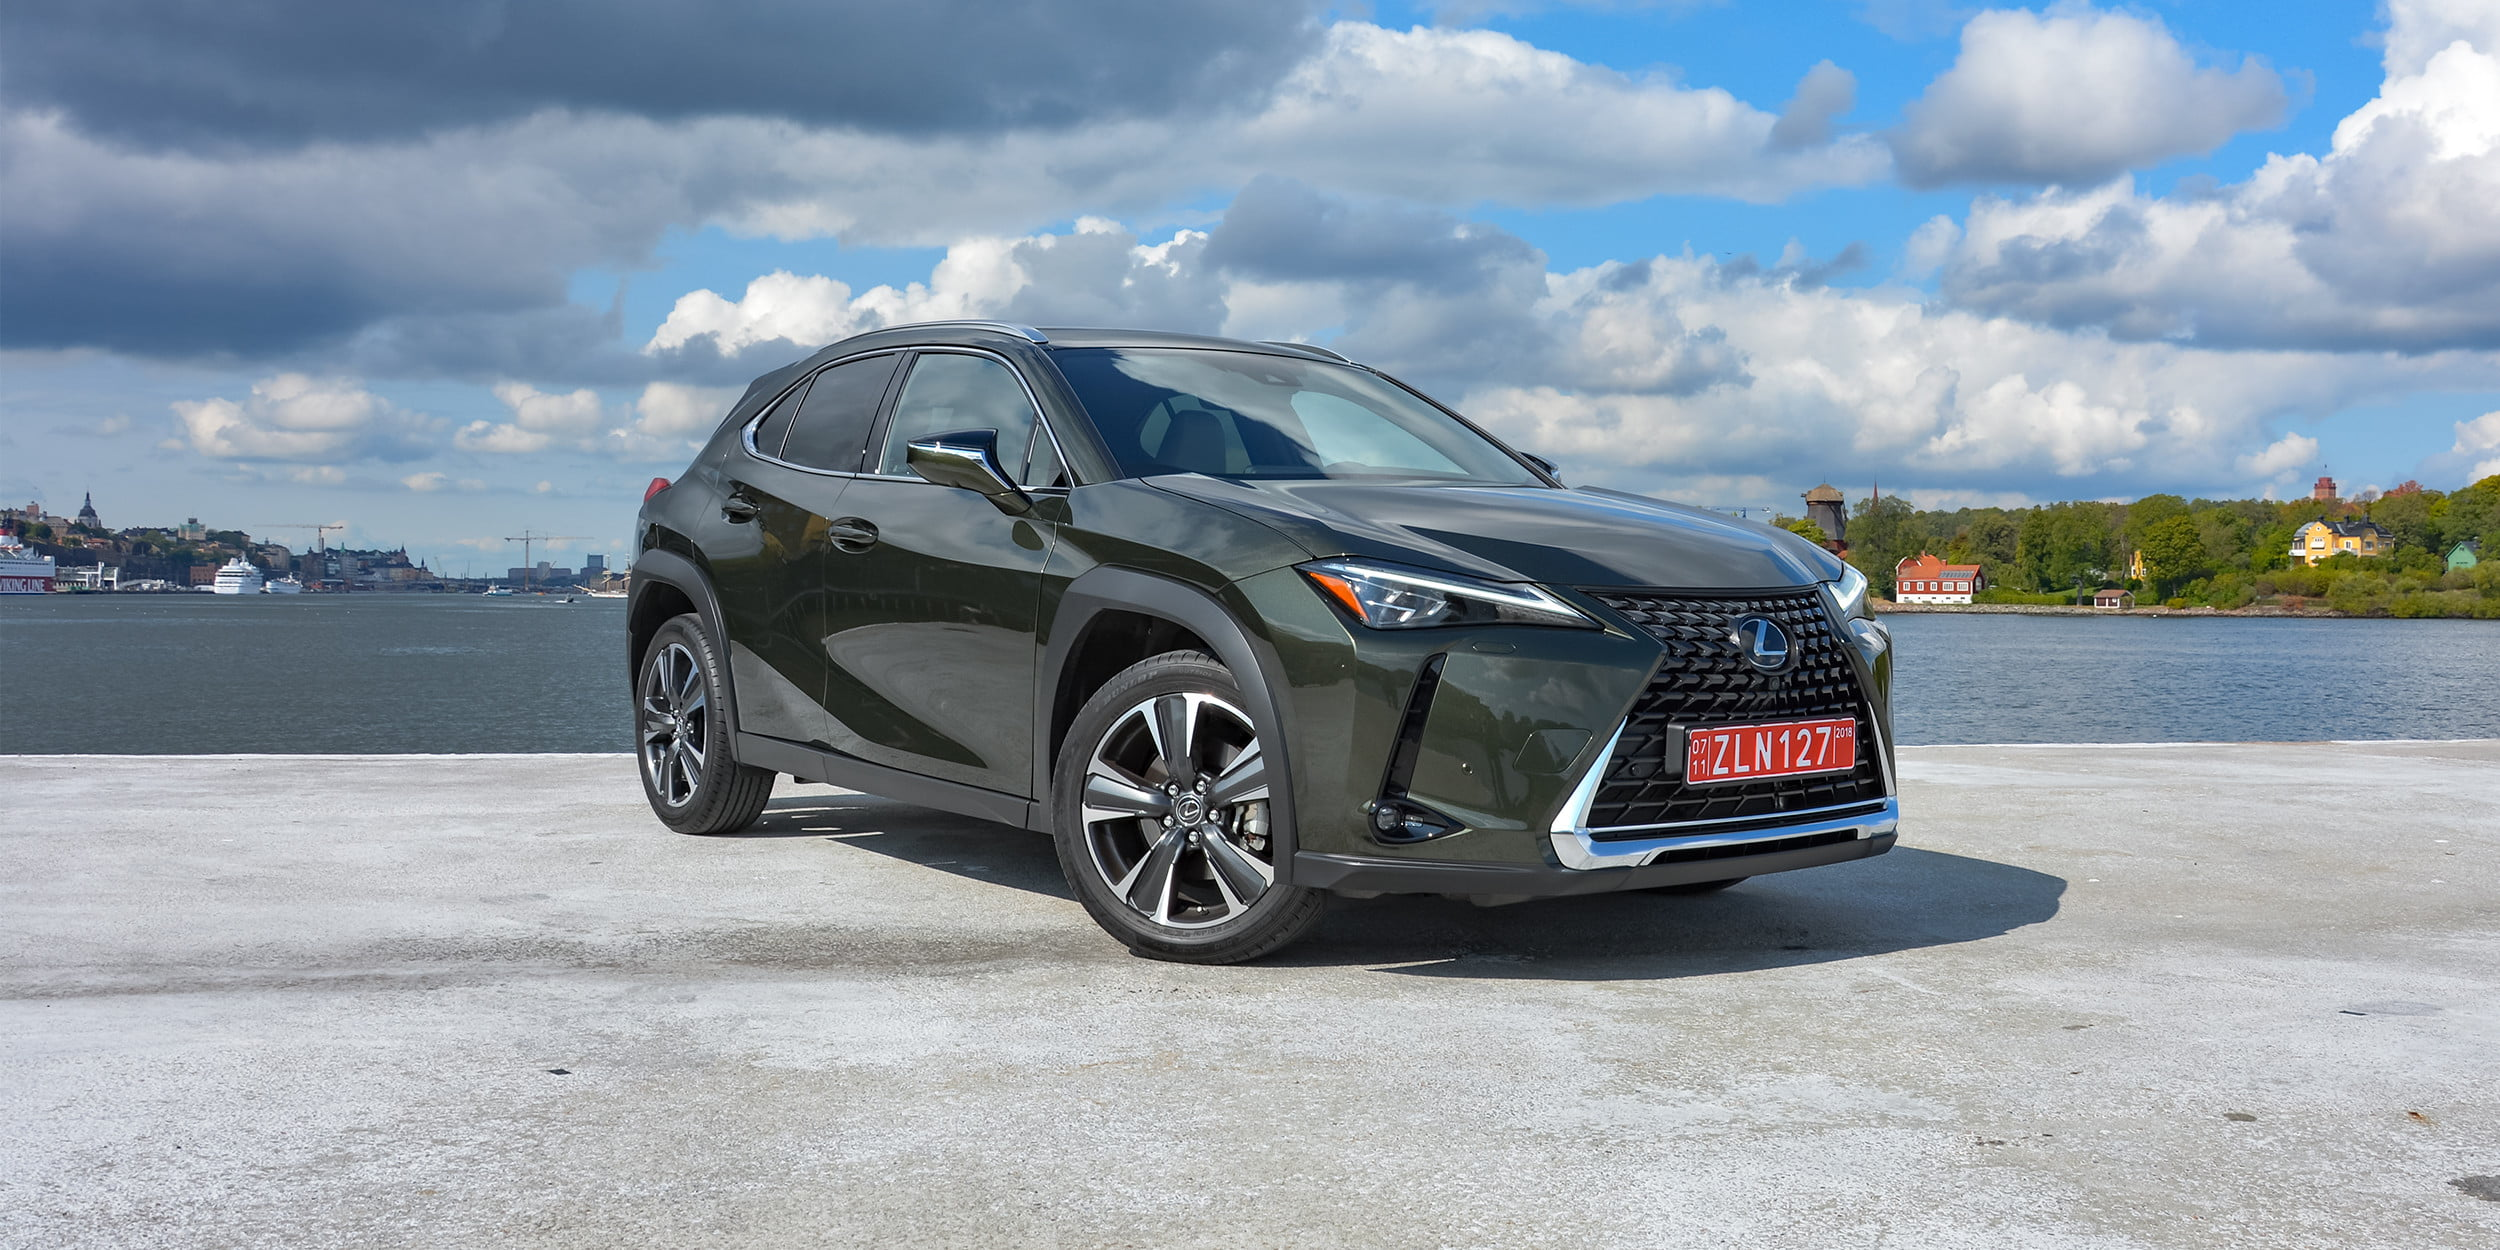 2019 Lexus UX First Drive Review, Driving Impressions, Specs